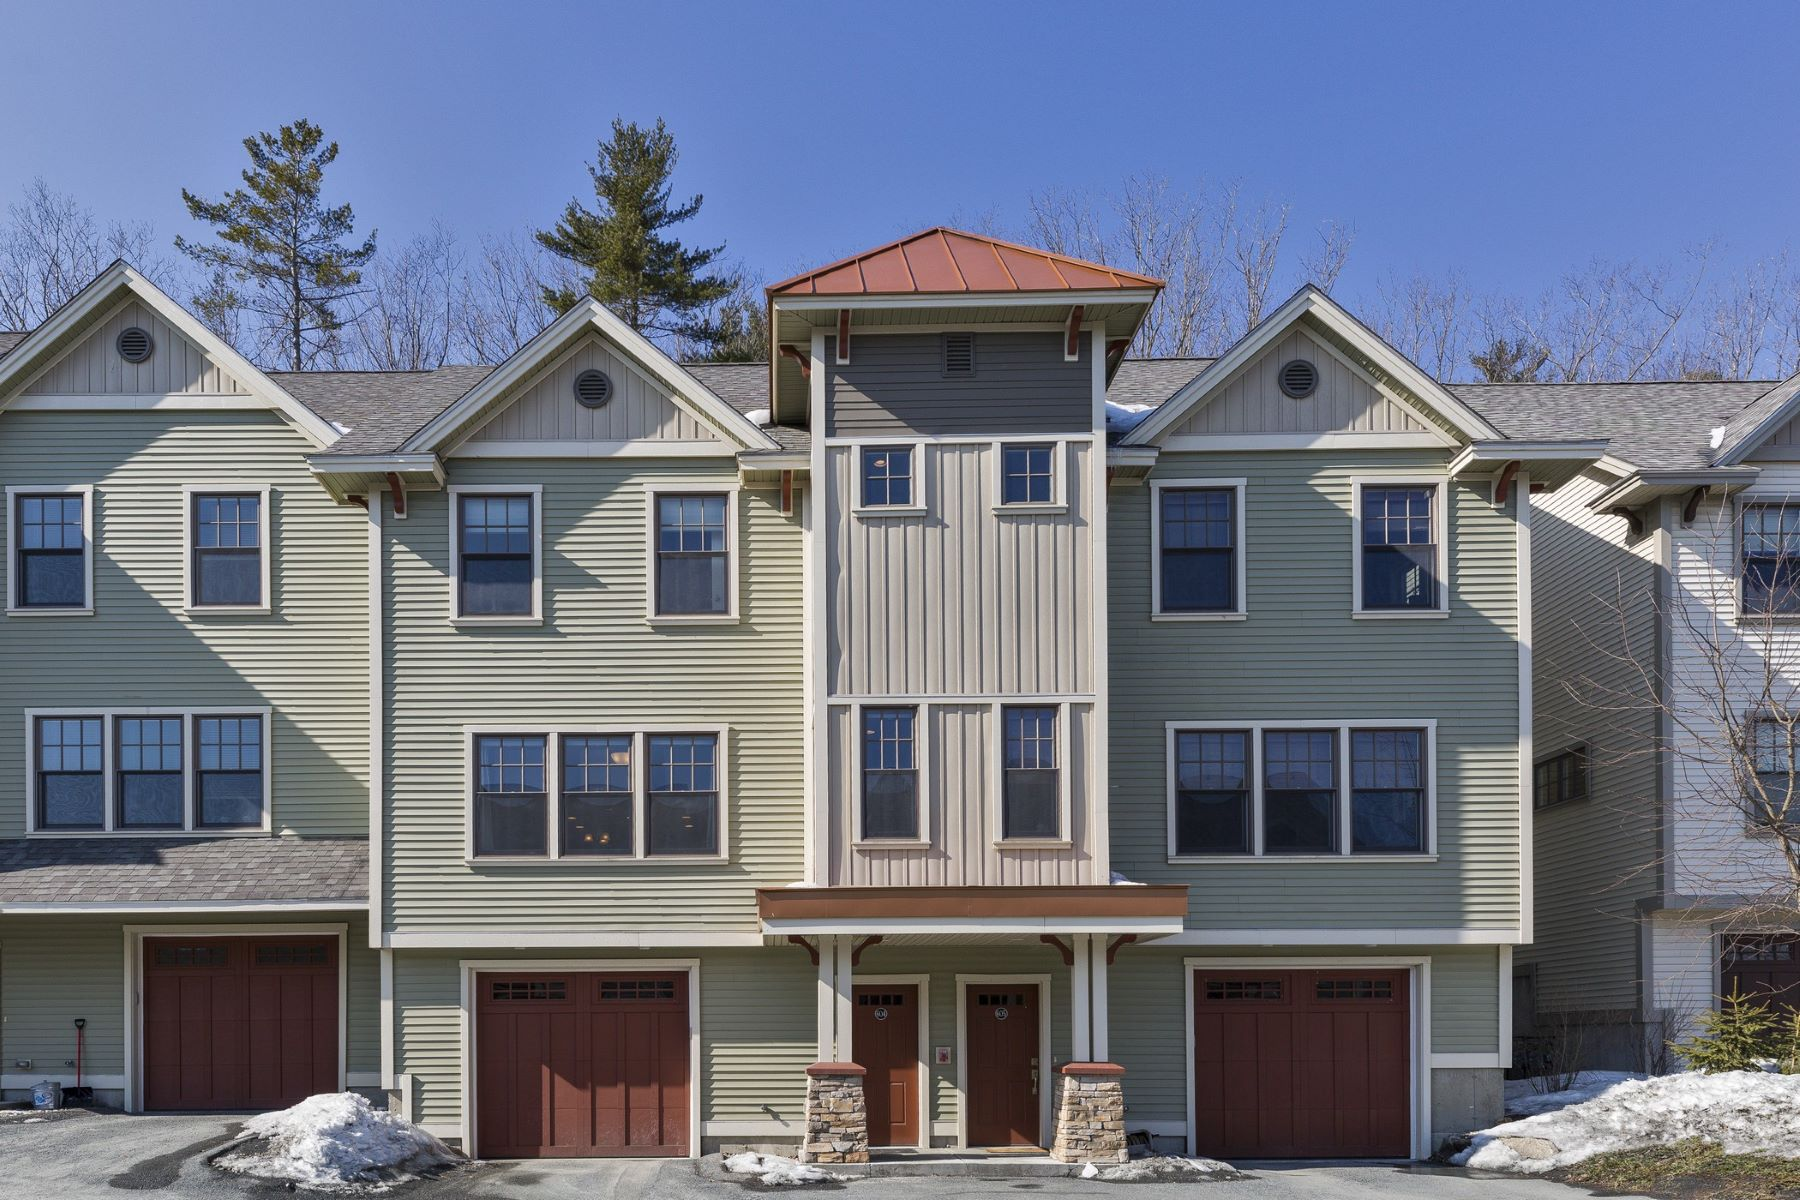 Condominium for Sale at Quarry Hill Condo 337 Mount Support Rd 604 Lebanon, New Hampshire 03766 United States